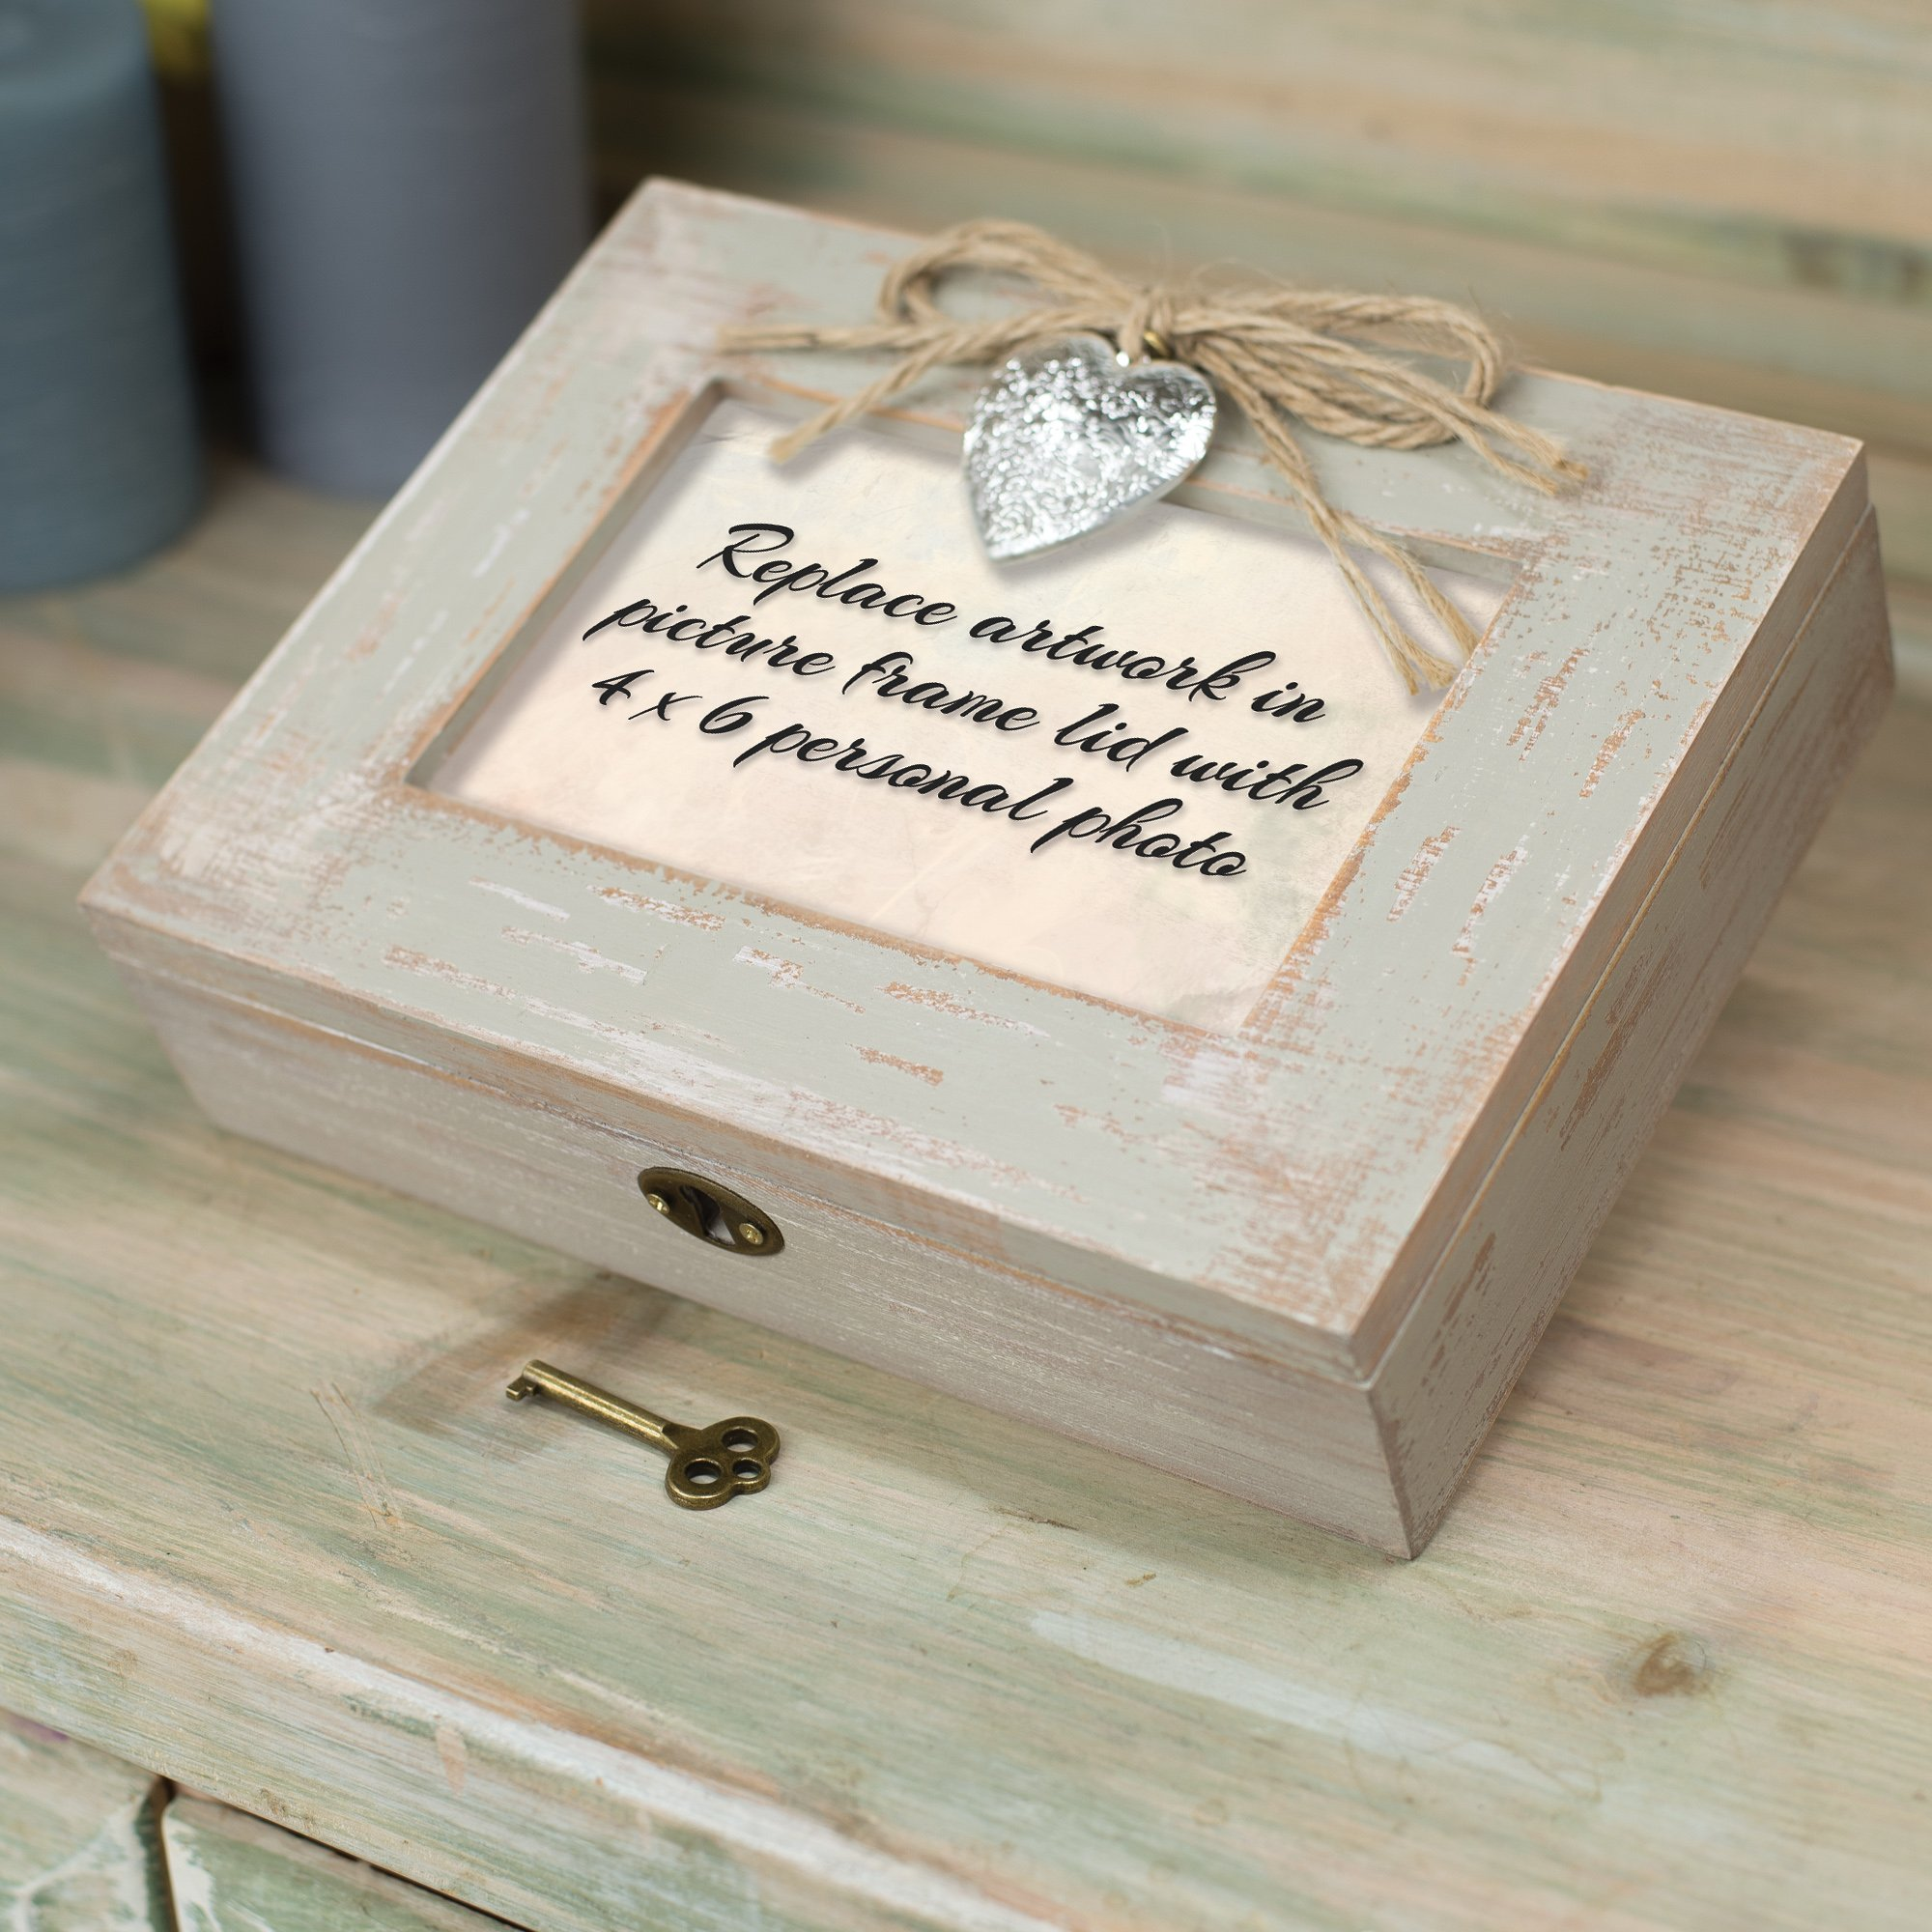 Cottage Garden You Make My Heart Smile Distressed Wood Locket Jewelry Music Box Plays Tune You Light Up My Life by Cottage Garden (Image #6)